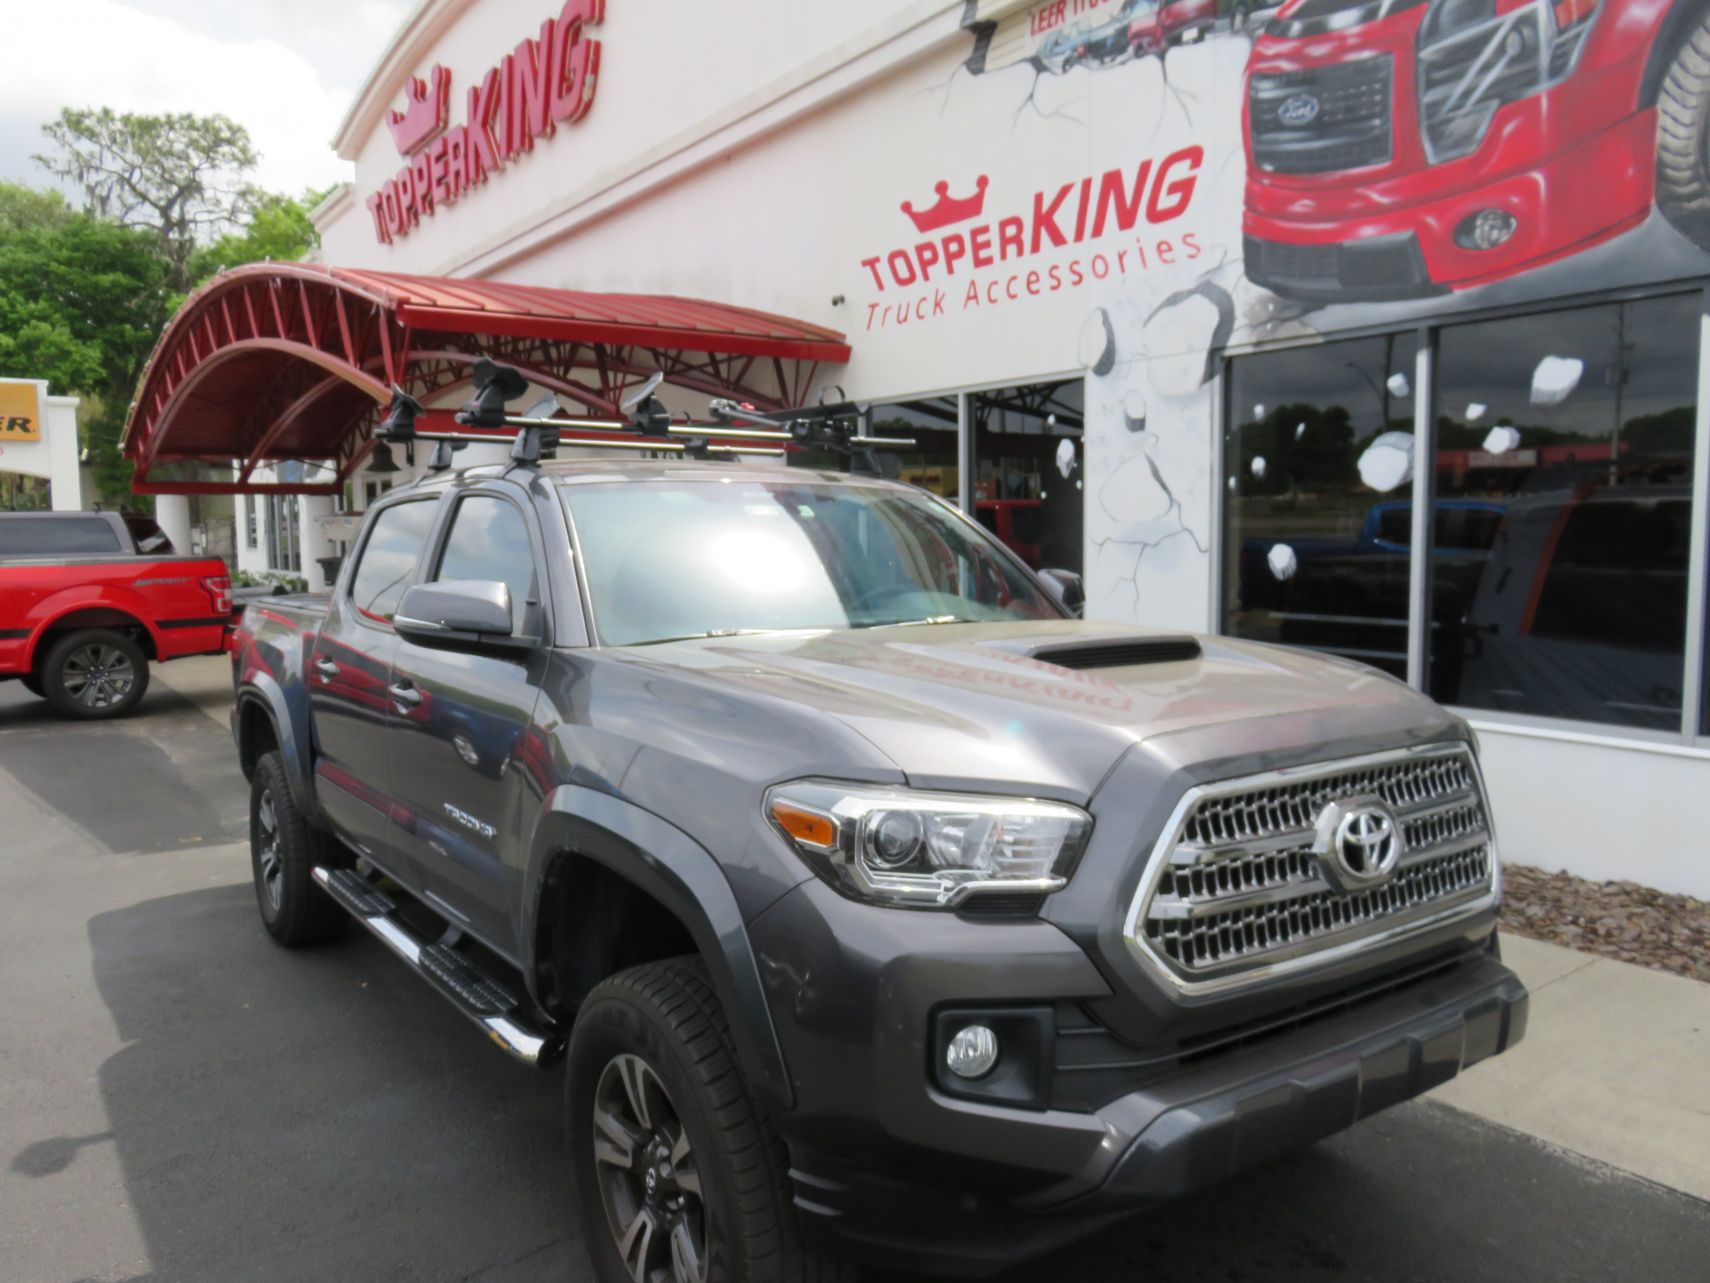 2019 Toyota Tacoma with LEER 350M, Yakima Rack, Nerf Bars, Hitch, Tint. Call TopperKING Brandon 813-689-2449 or Clearwater FL 727-530-9066.